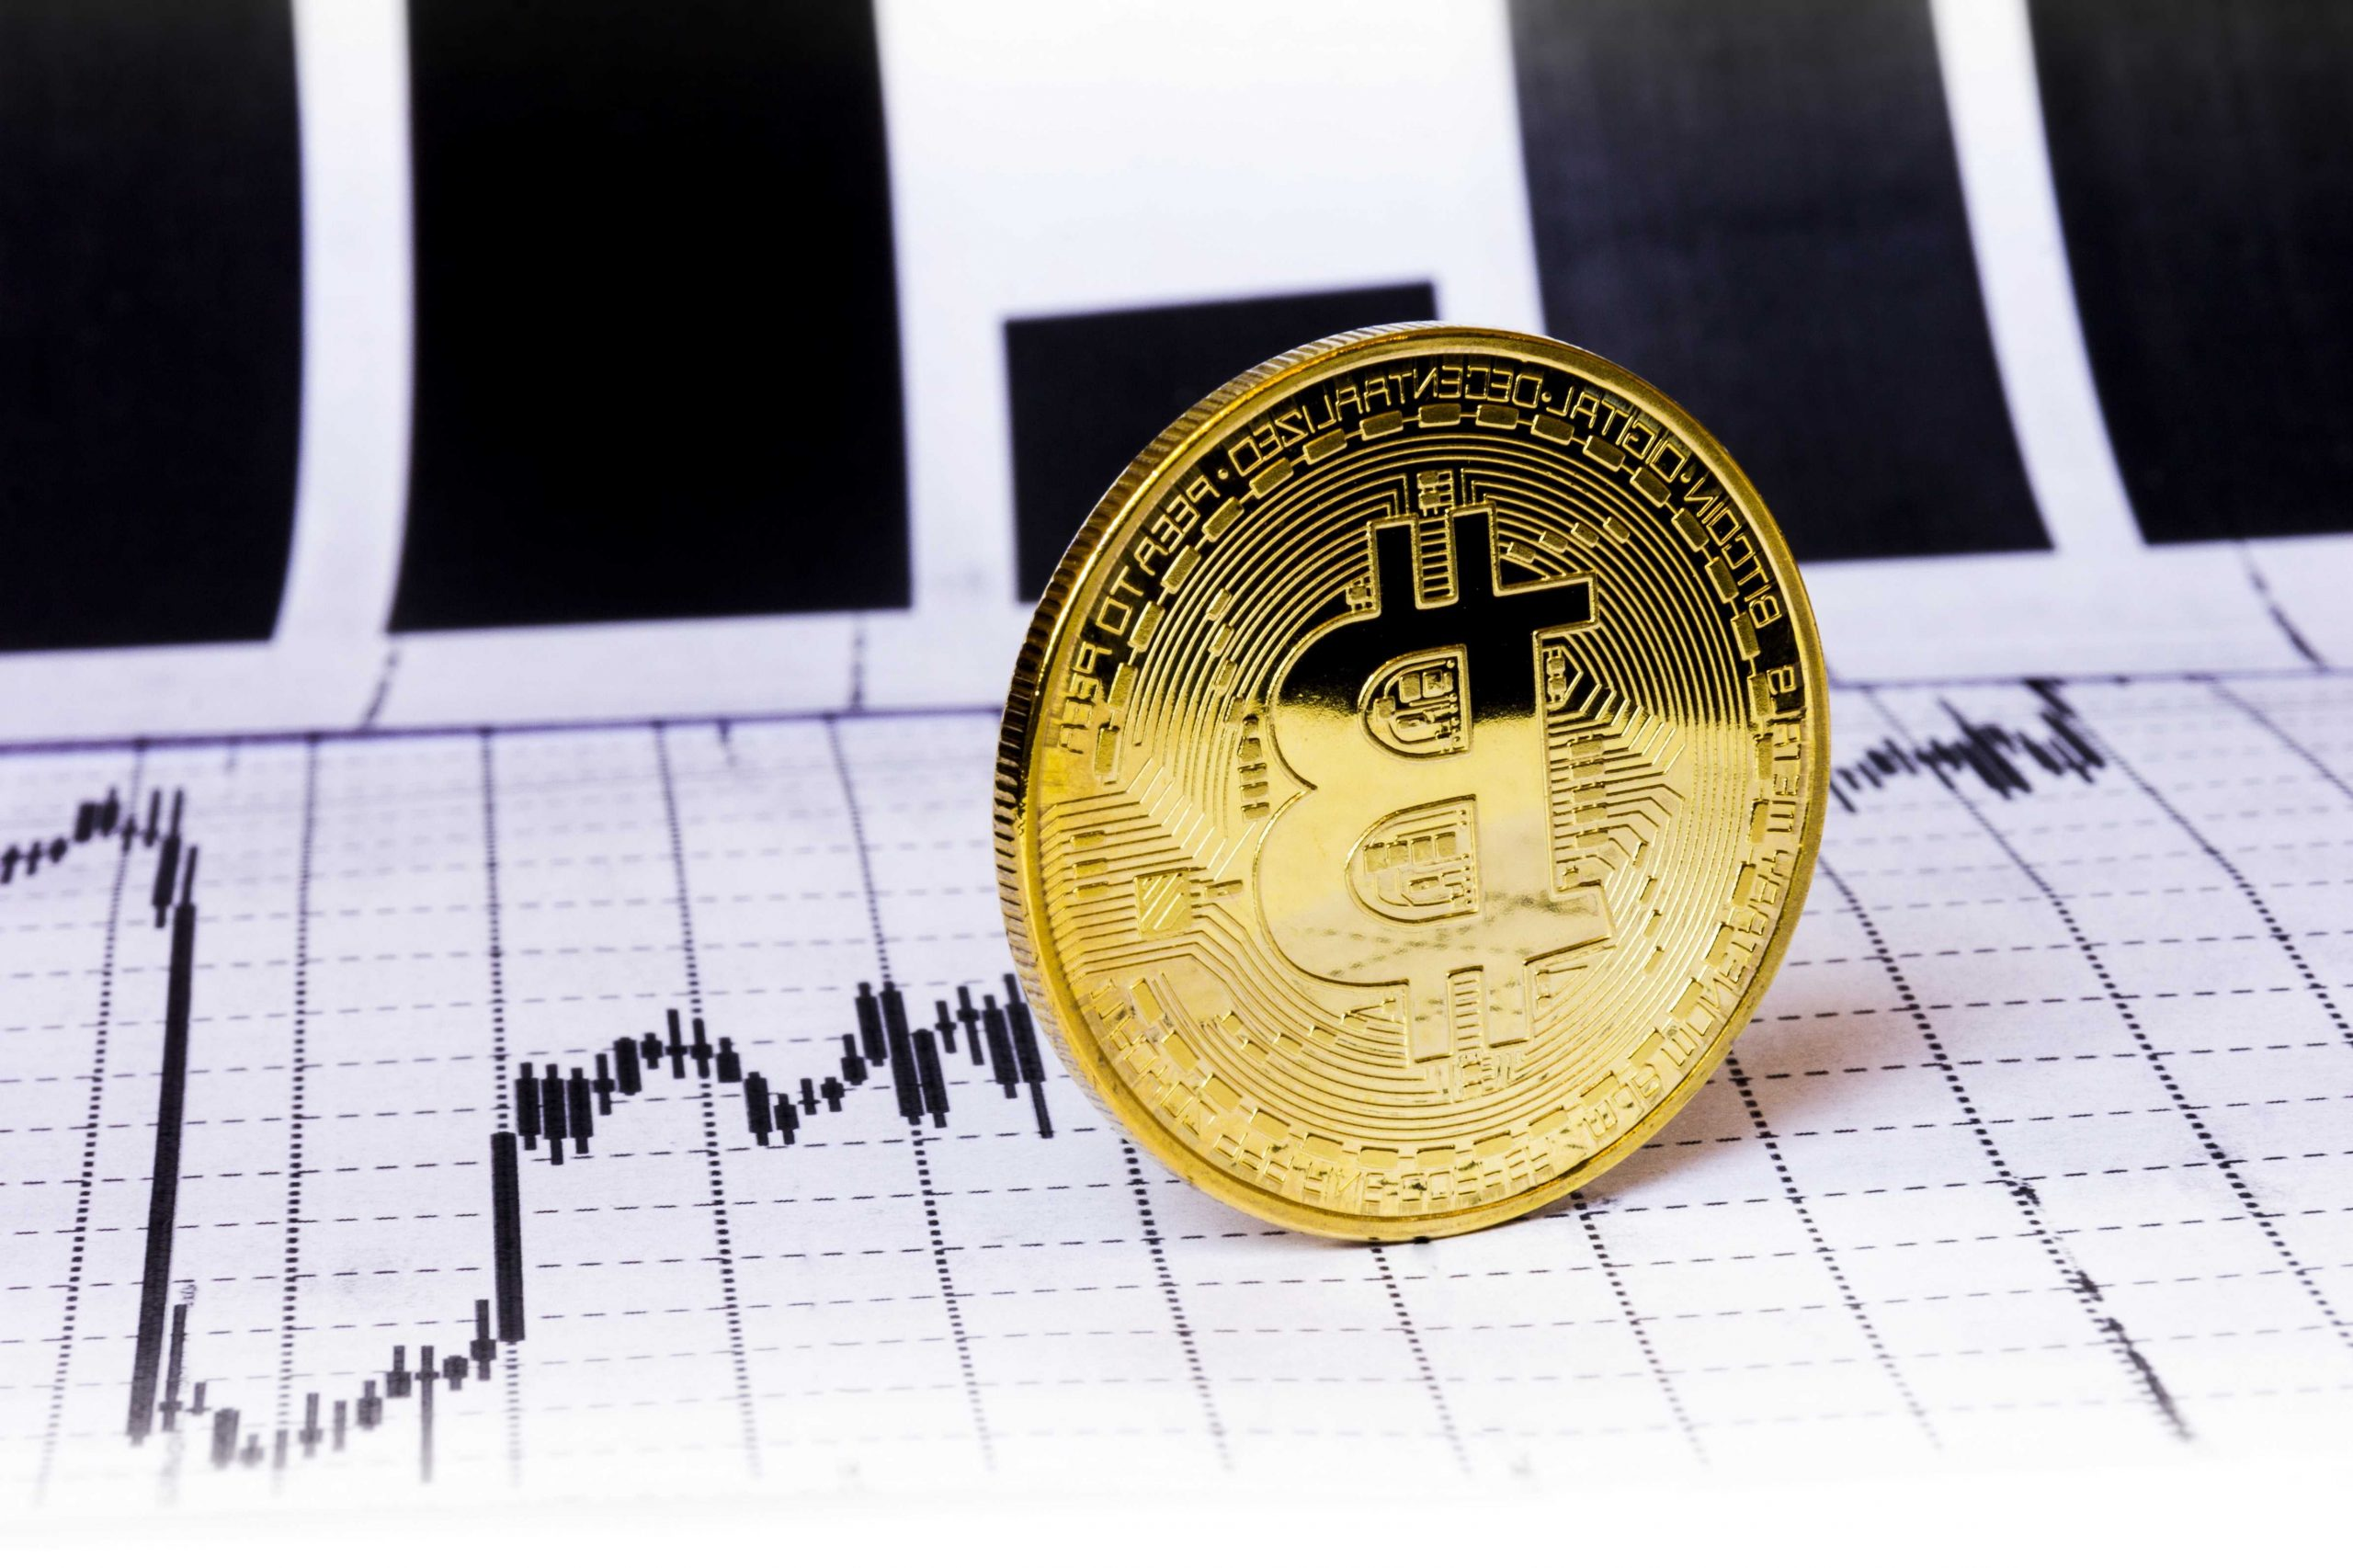 What are virtual currencies?